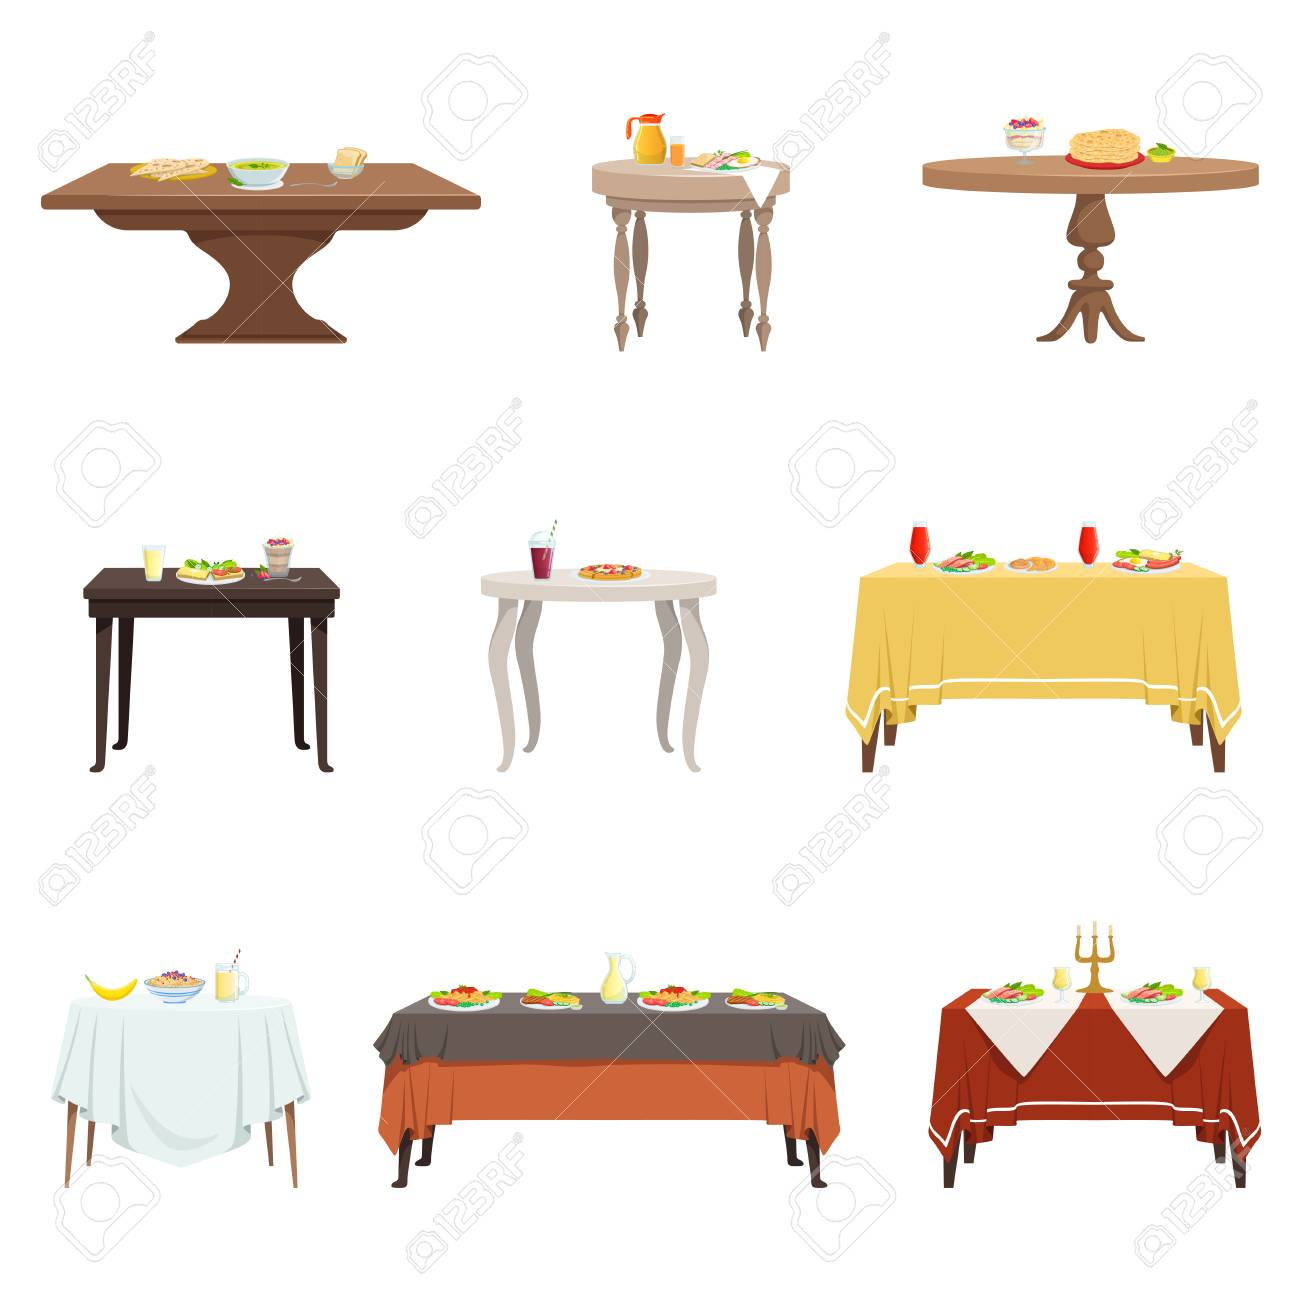 Flat Vector Set Of Wooden Dinner Tables With Various Food And ...